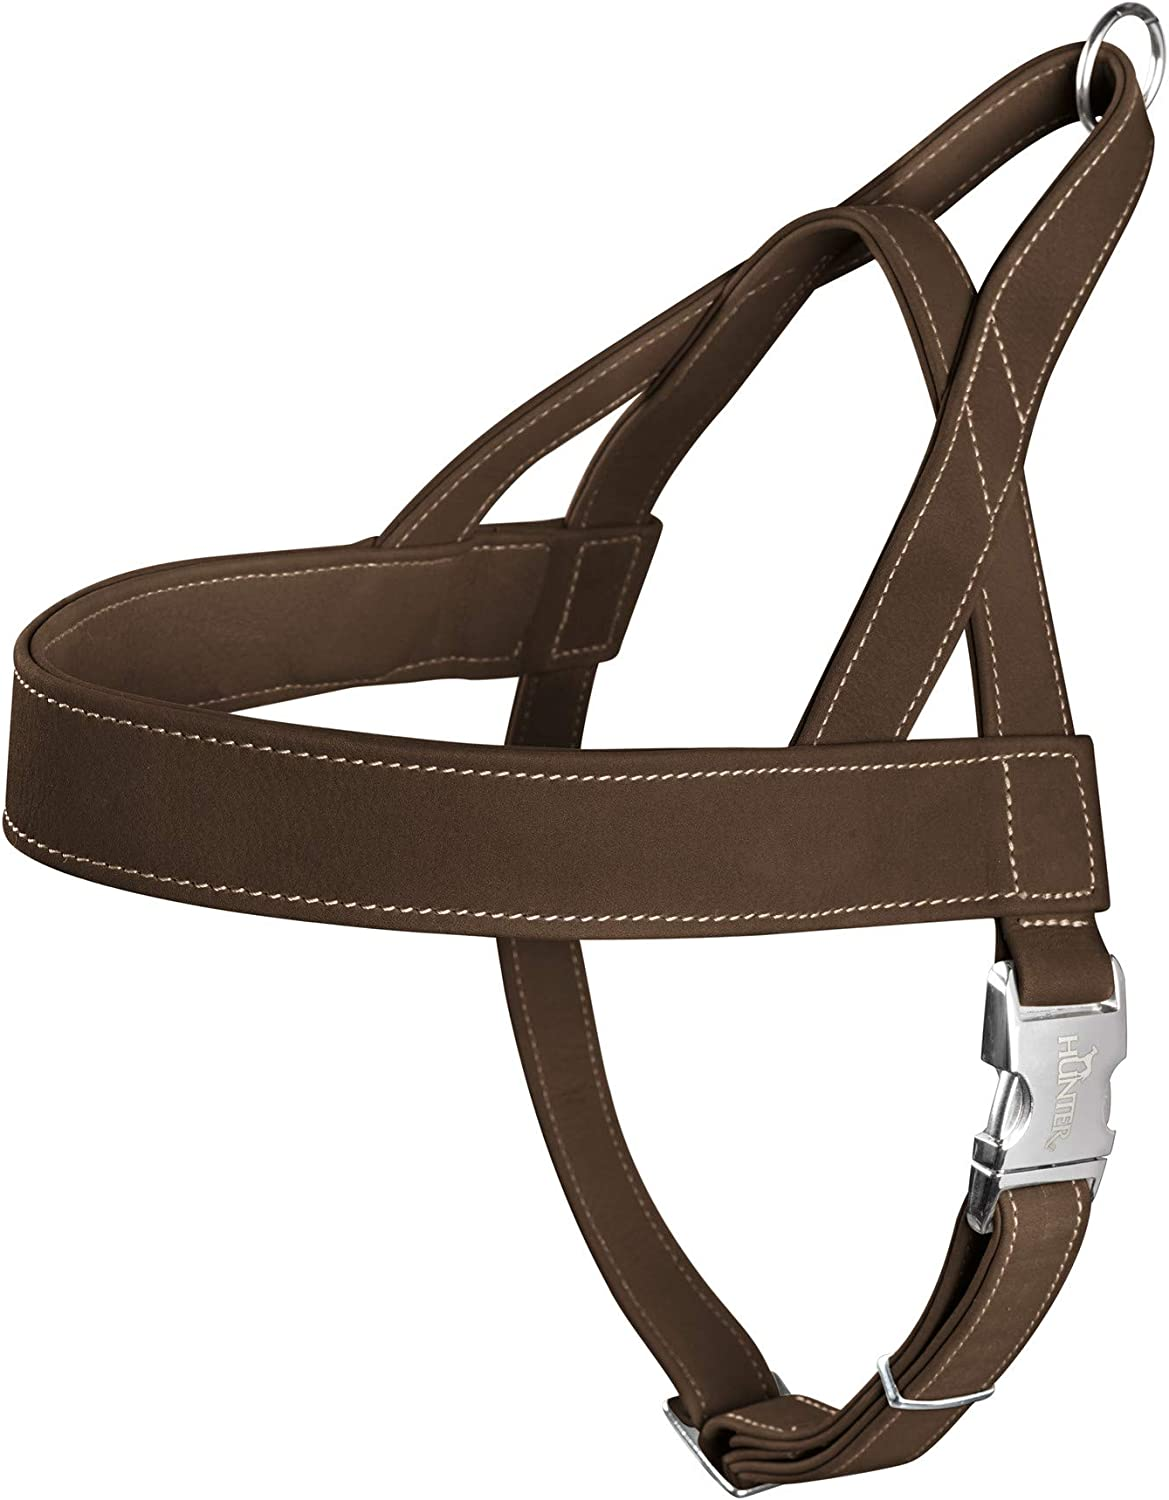 Hunter Clearance SALE! Limited time! Norwegian Harness for Hunting Dogs Alternative dealer